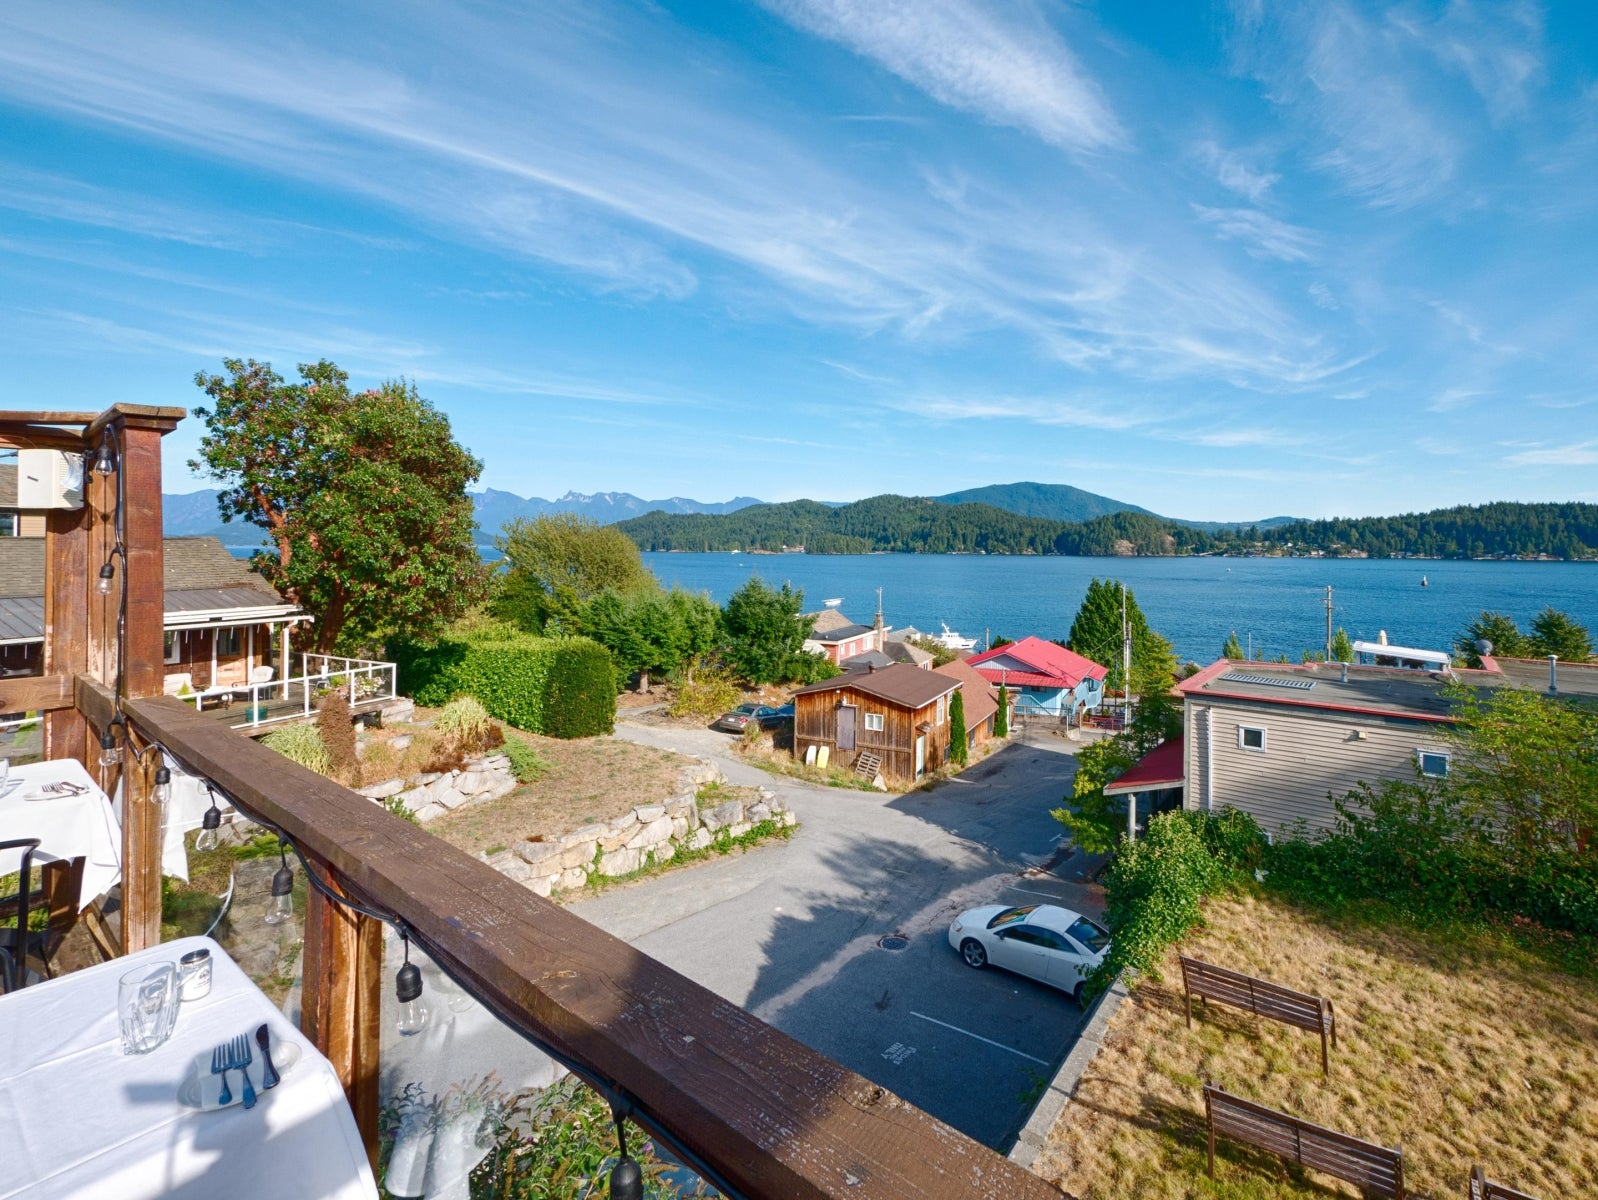 The Nova Kitchen 546 Gibsons Way, Gibsons BC V0N1V9 - Gibsons & Area COMM for sale(C8014726) #7